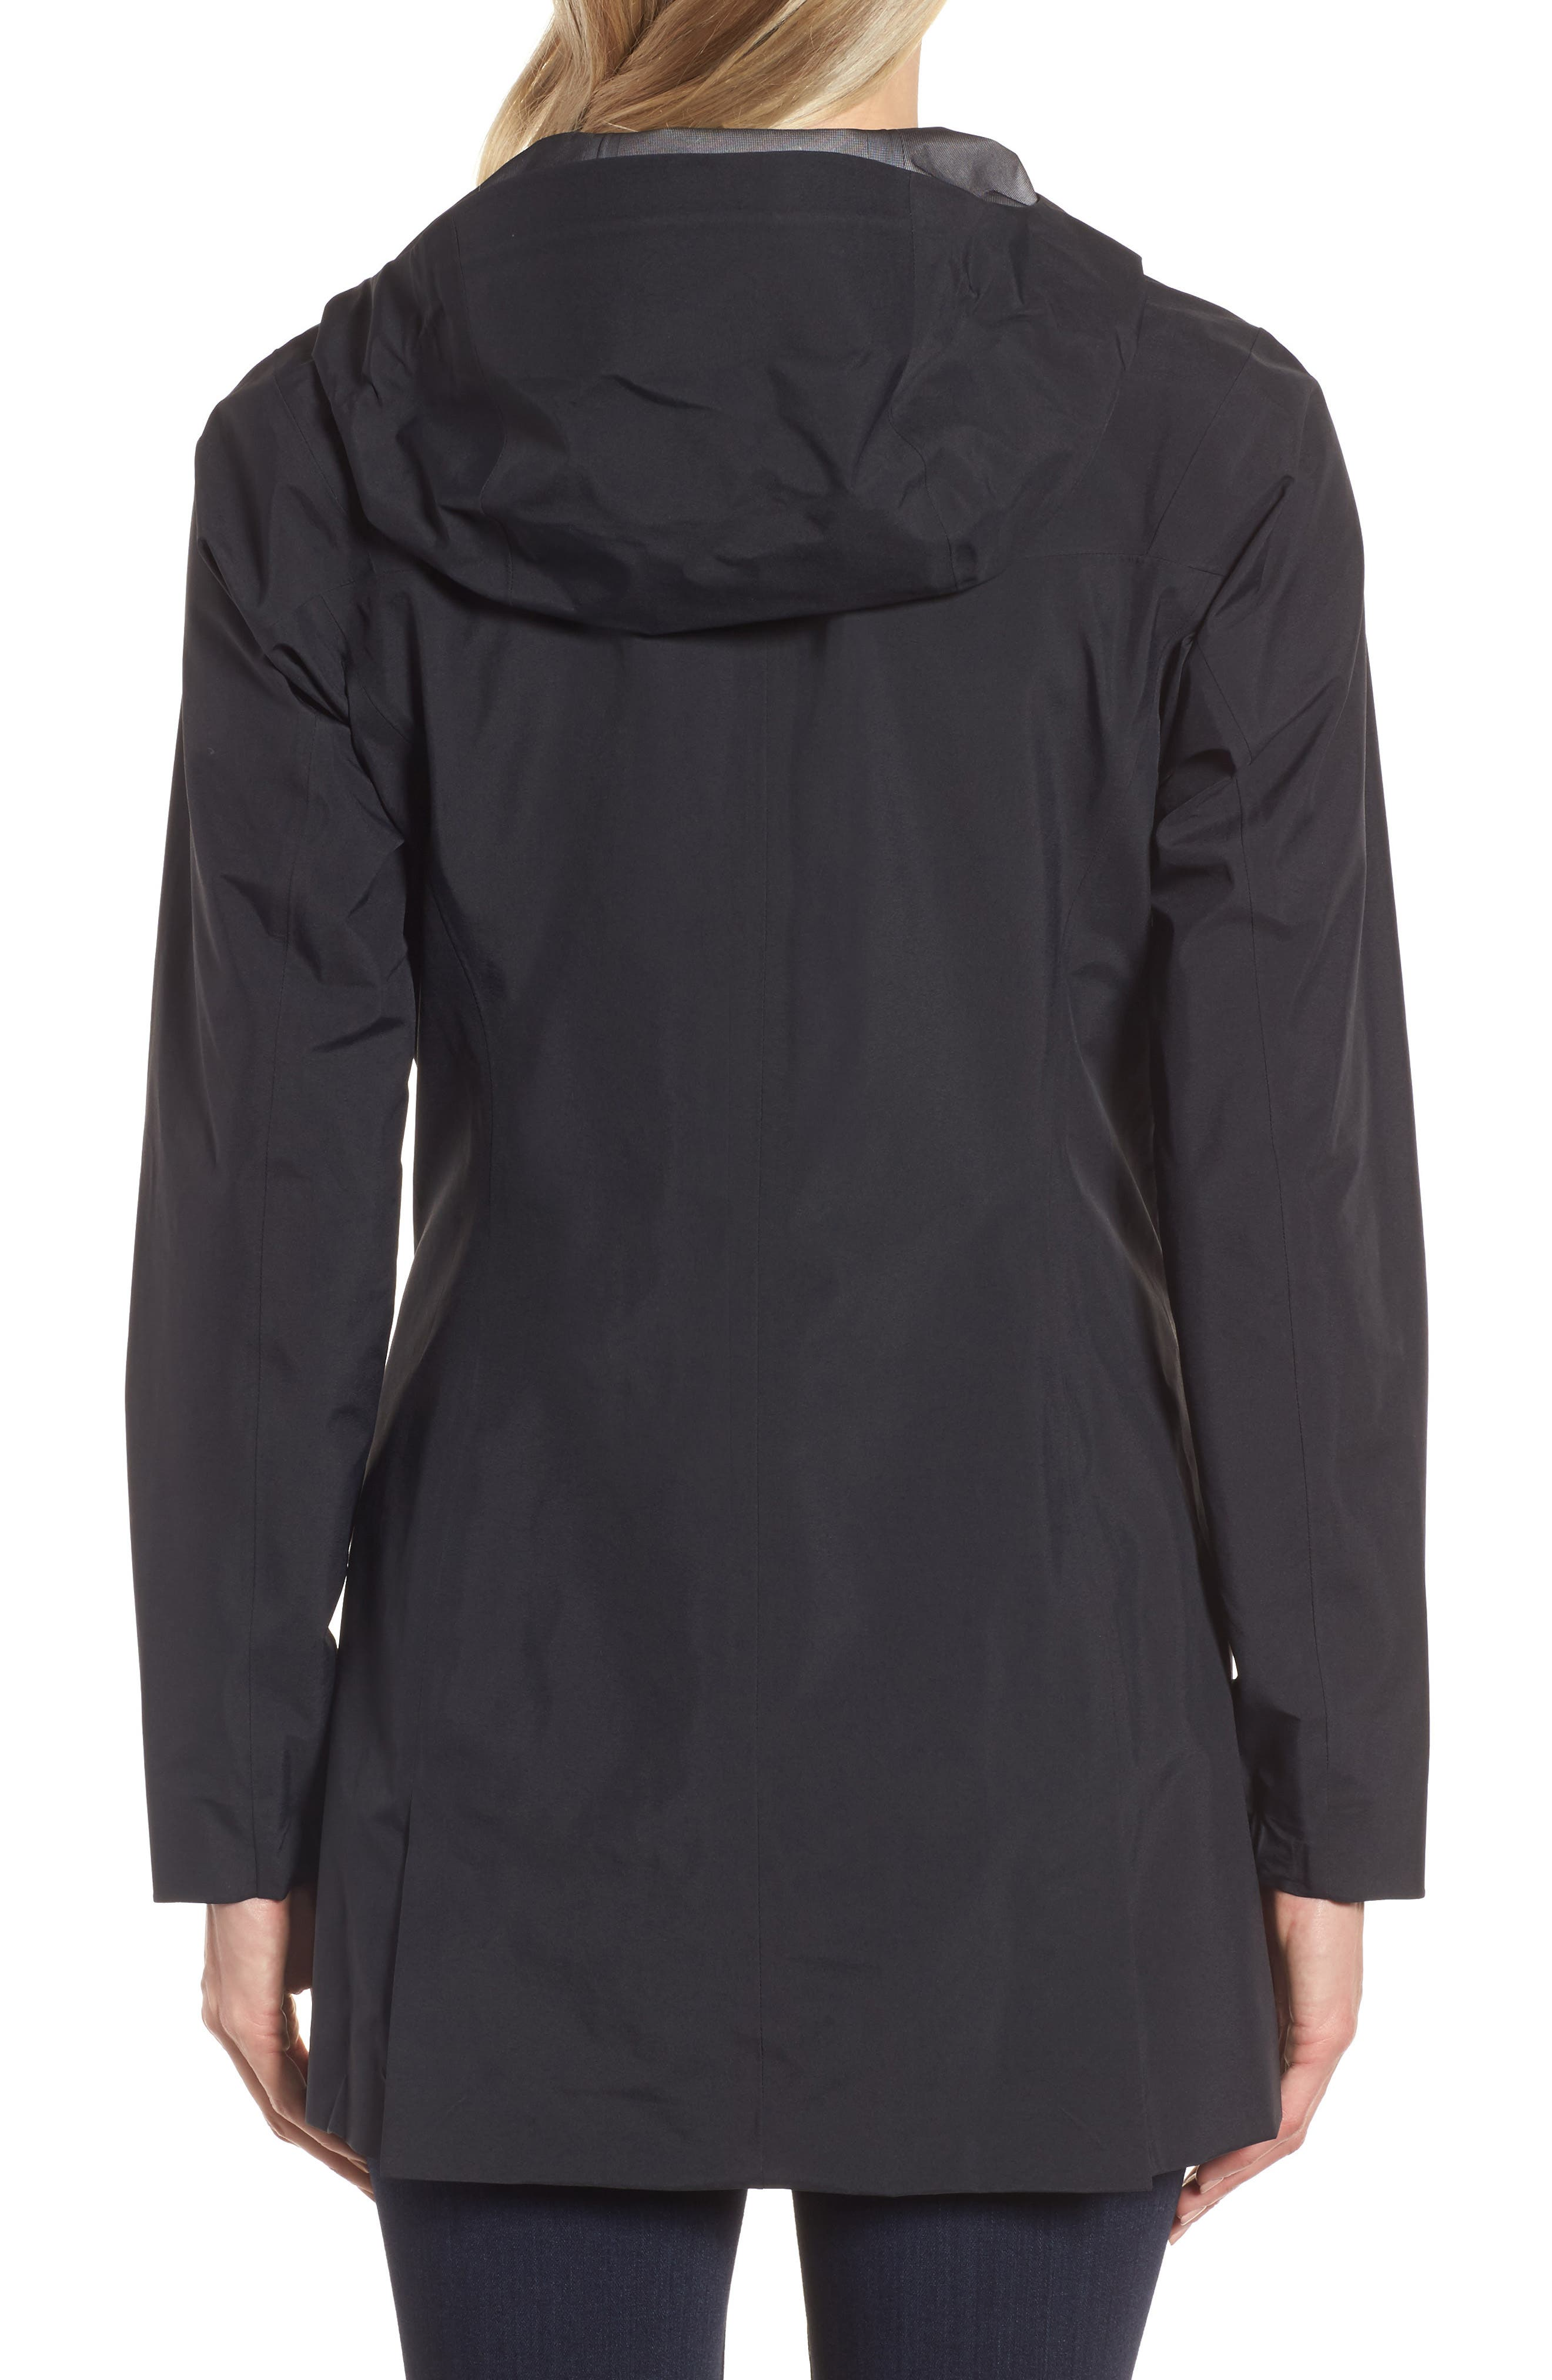 Codetta Waterproof Relaxed Fit Gore-Tex<sup>®</sup> 3L Rain Jacket,                             Alternate thumbnail 2, color,                             001